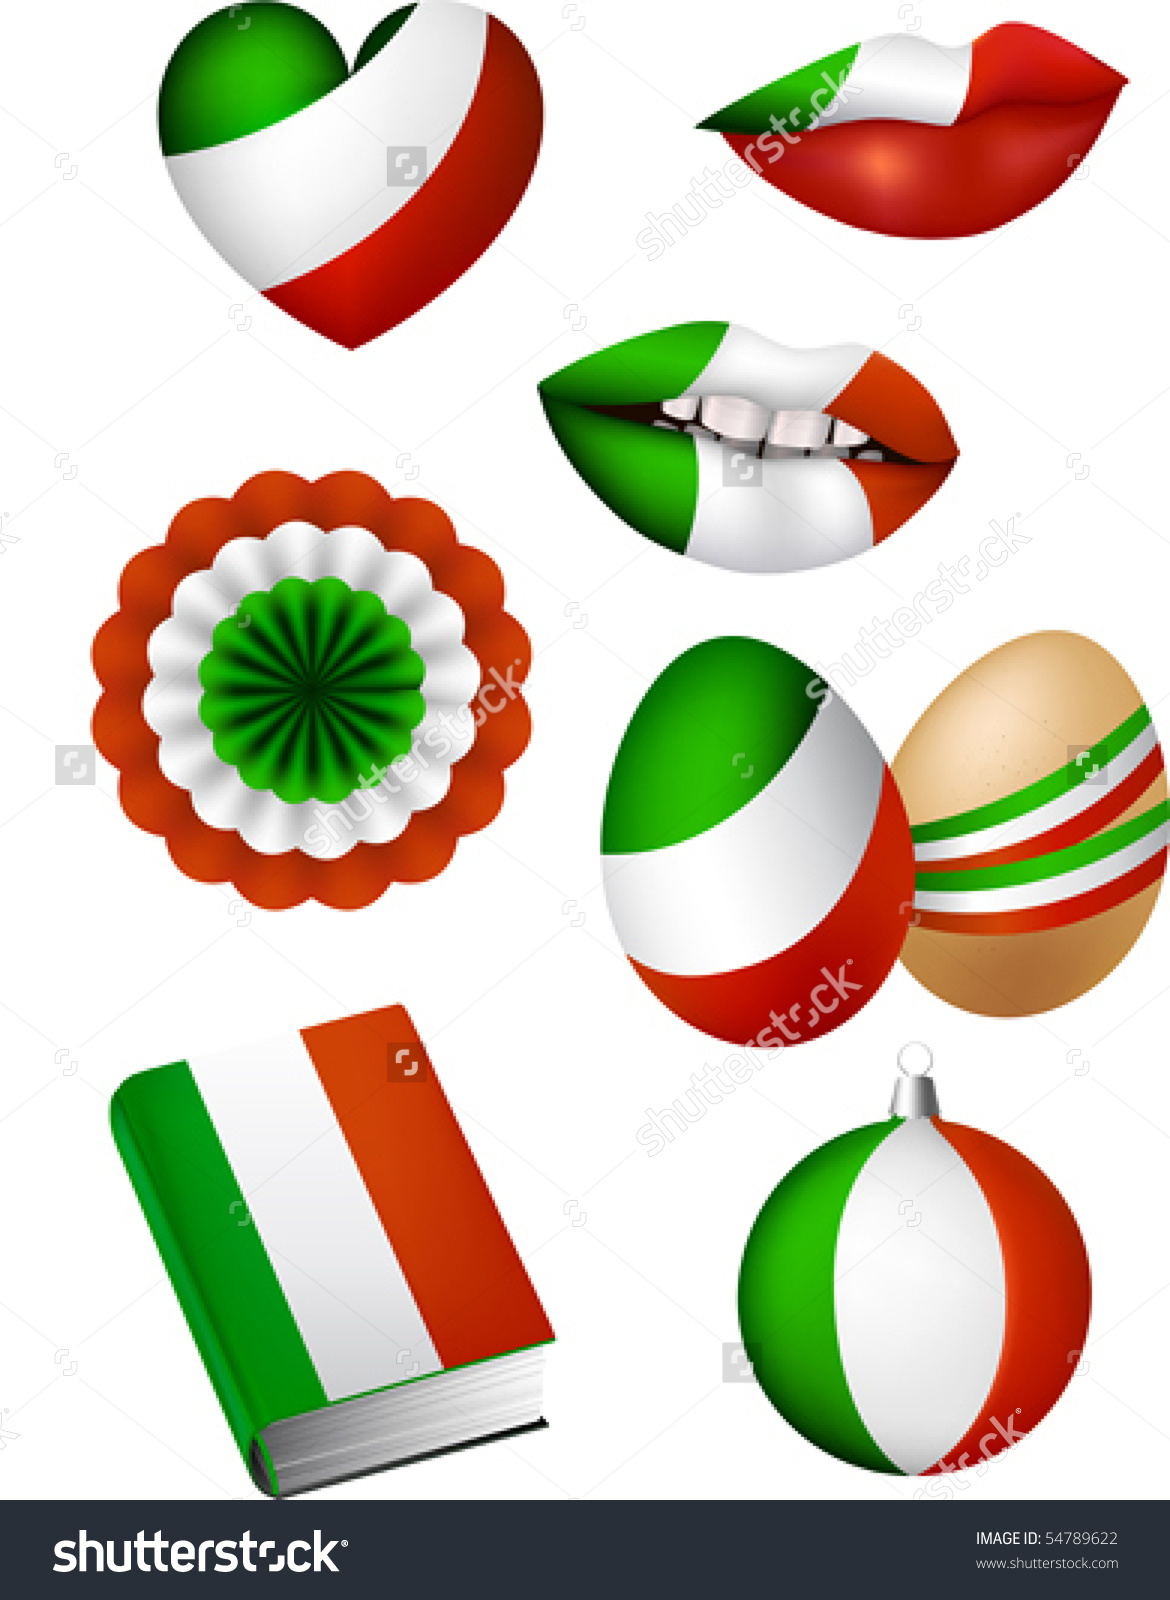 Vector Illustration Of Some Patriotic Elements, Italian Flag Color.